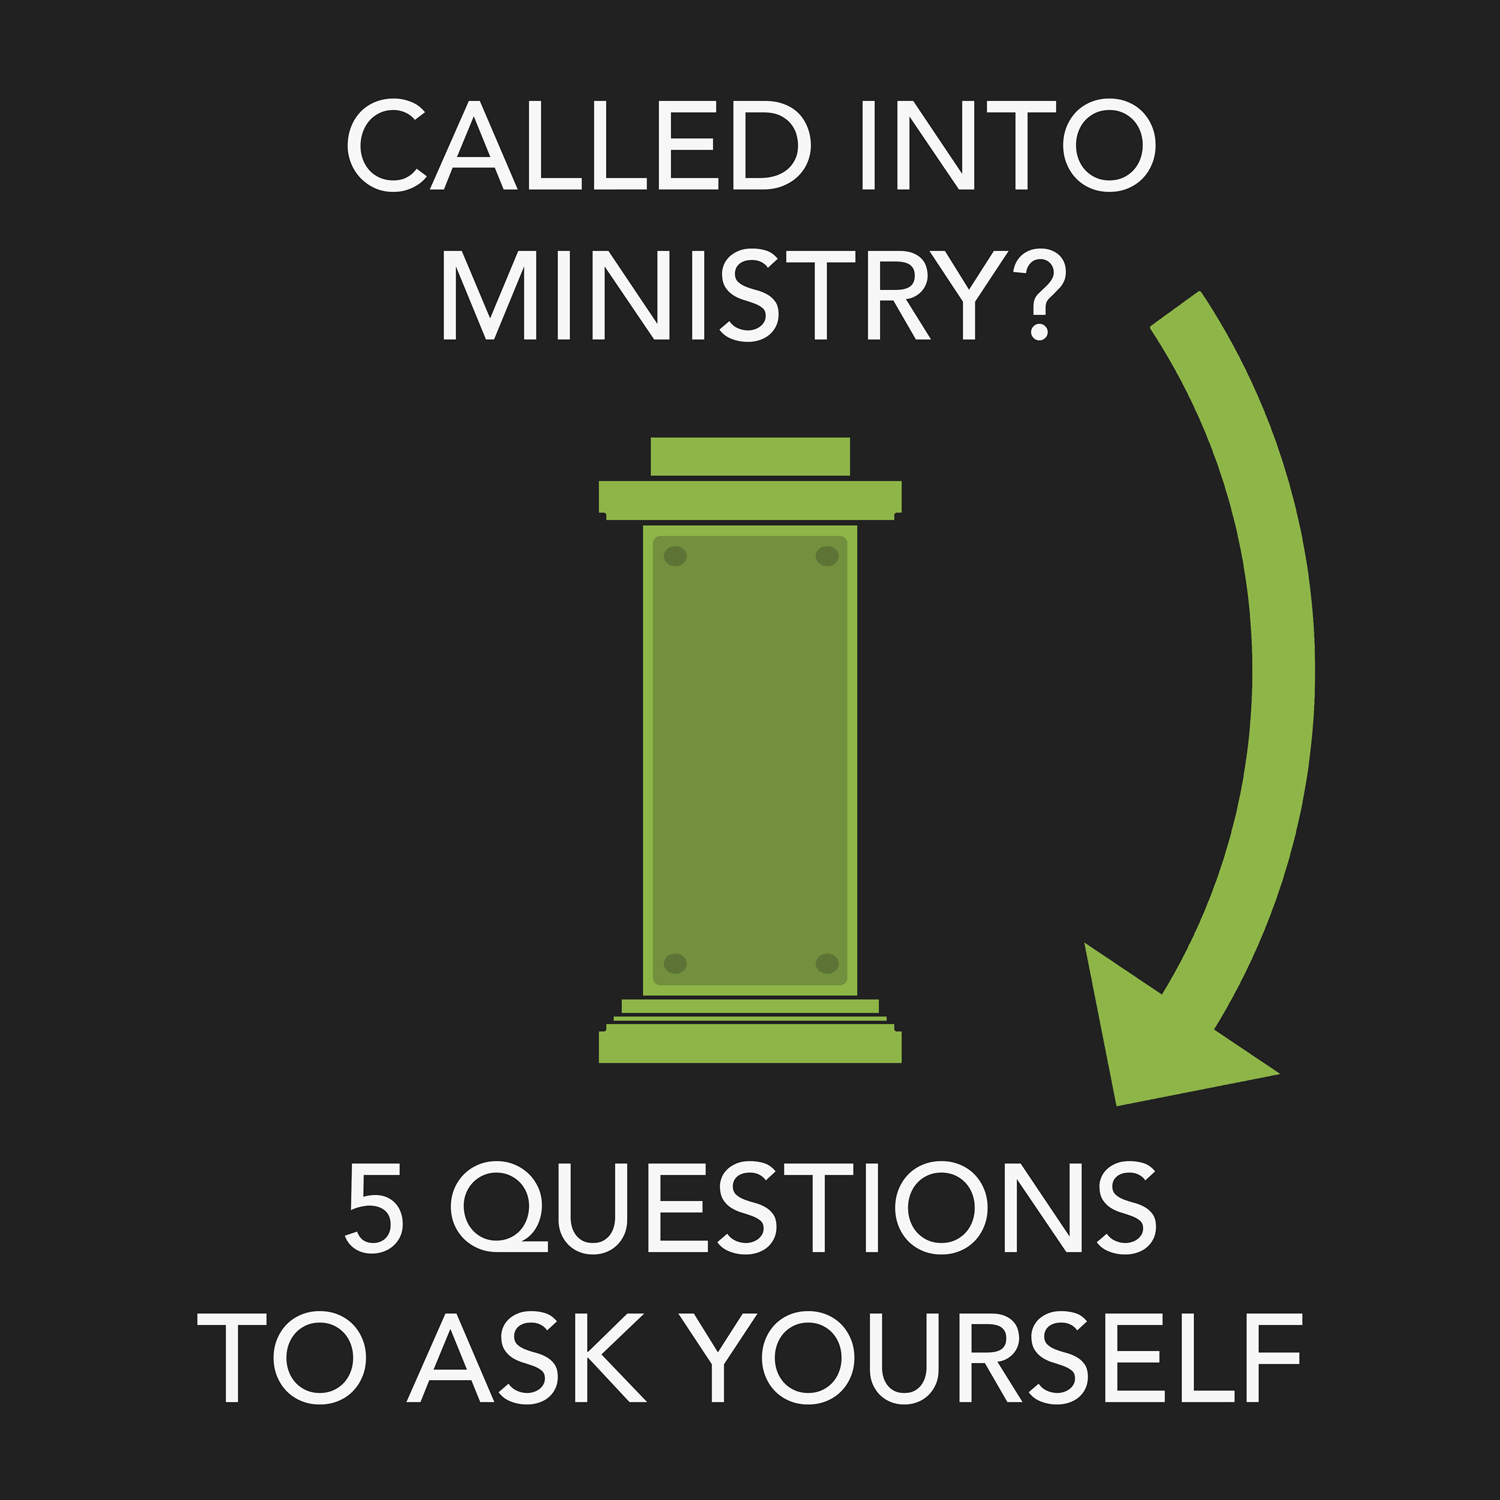 Called into Ministry? Five Questions to Ask Yourself